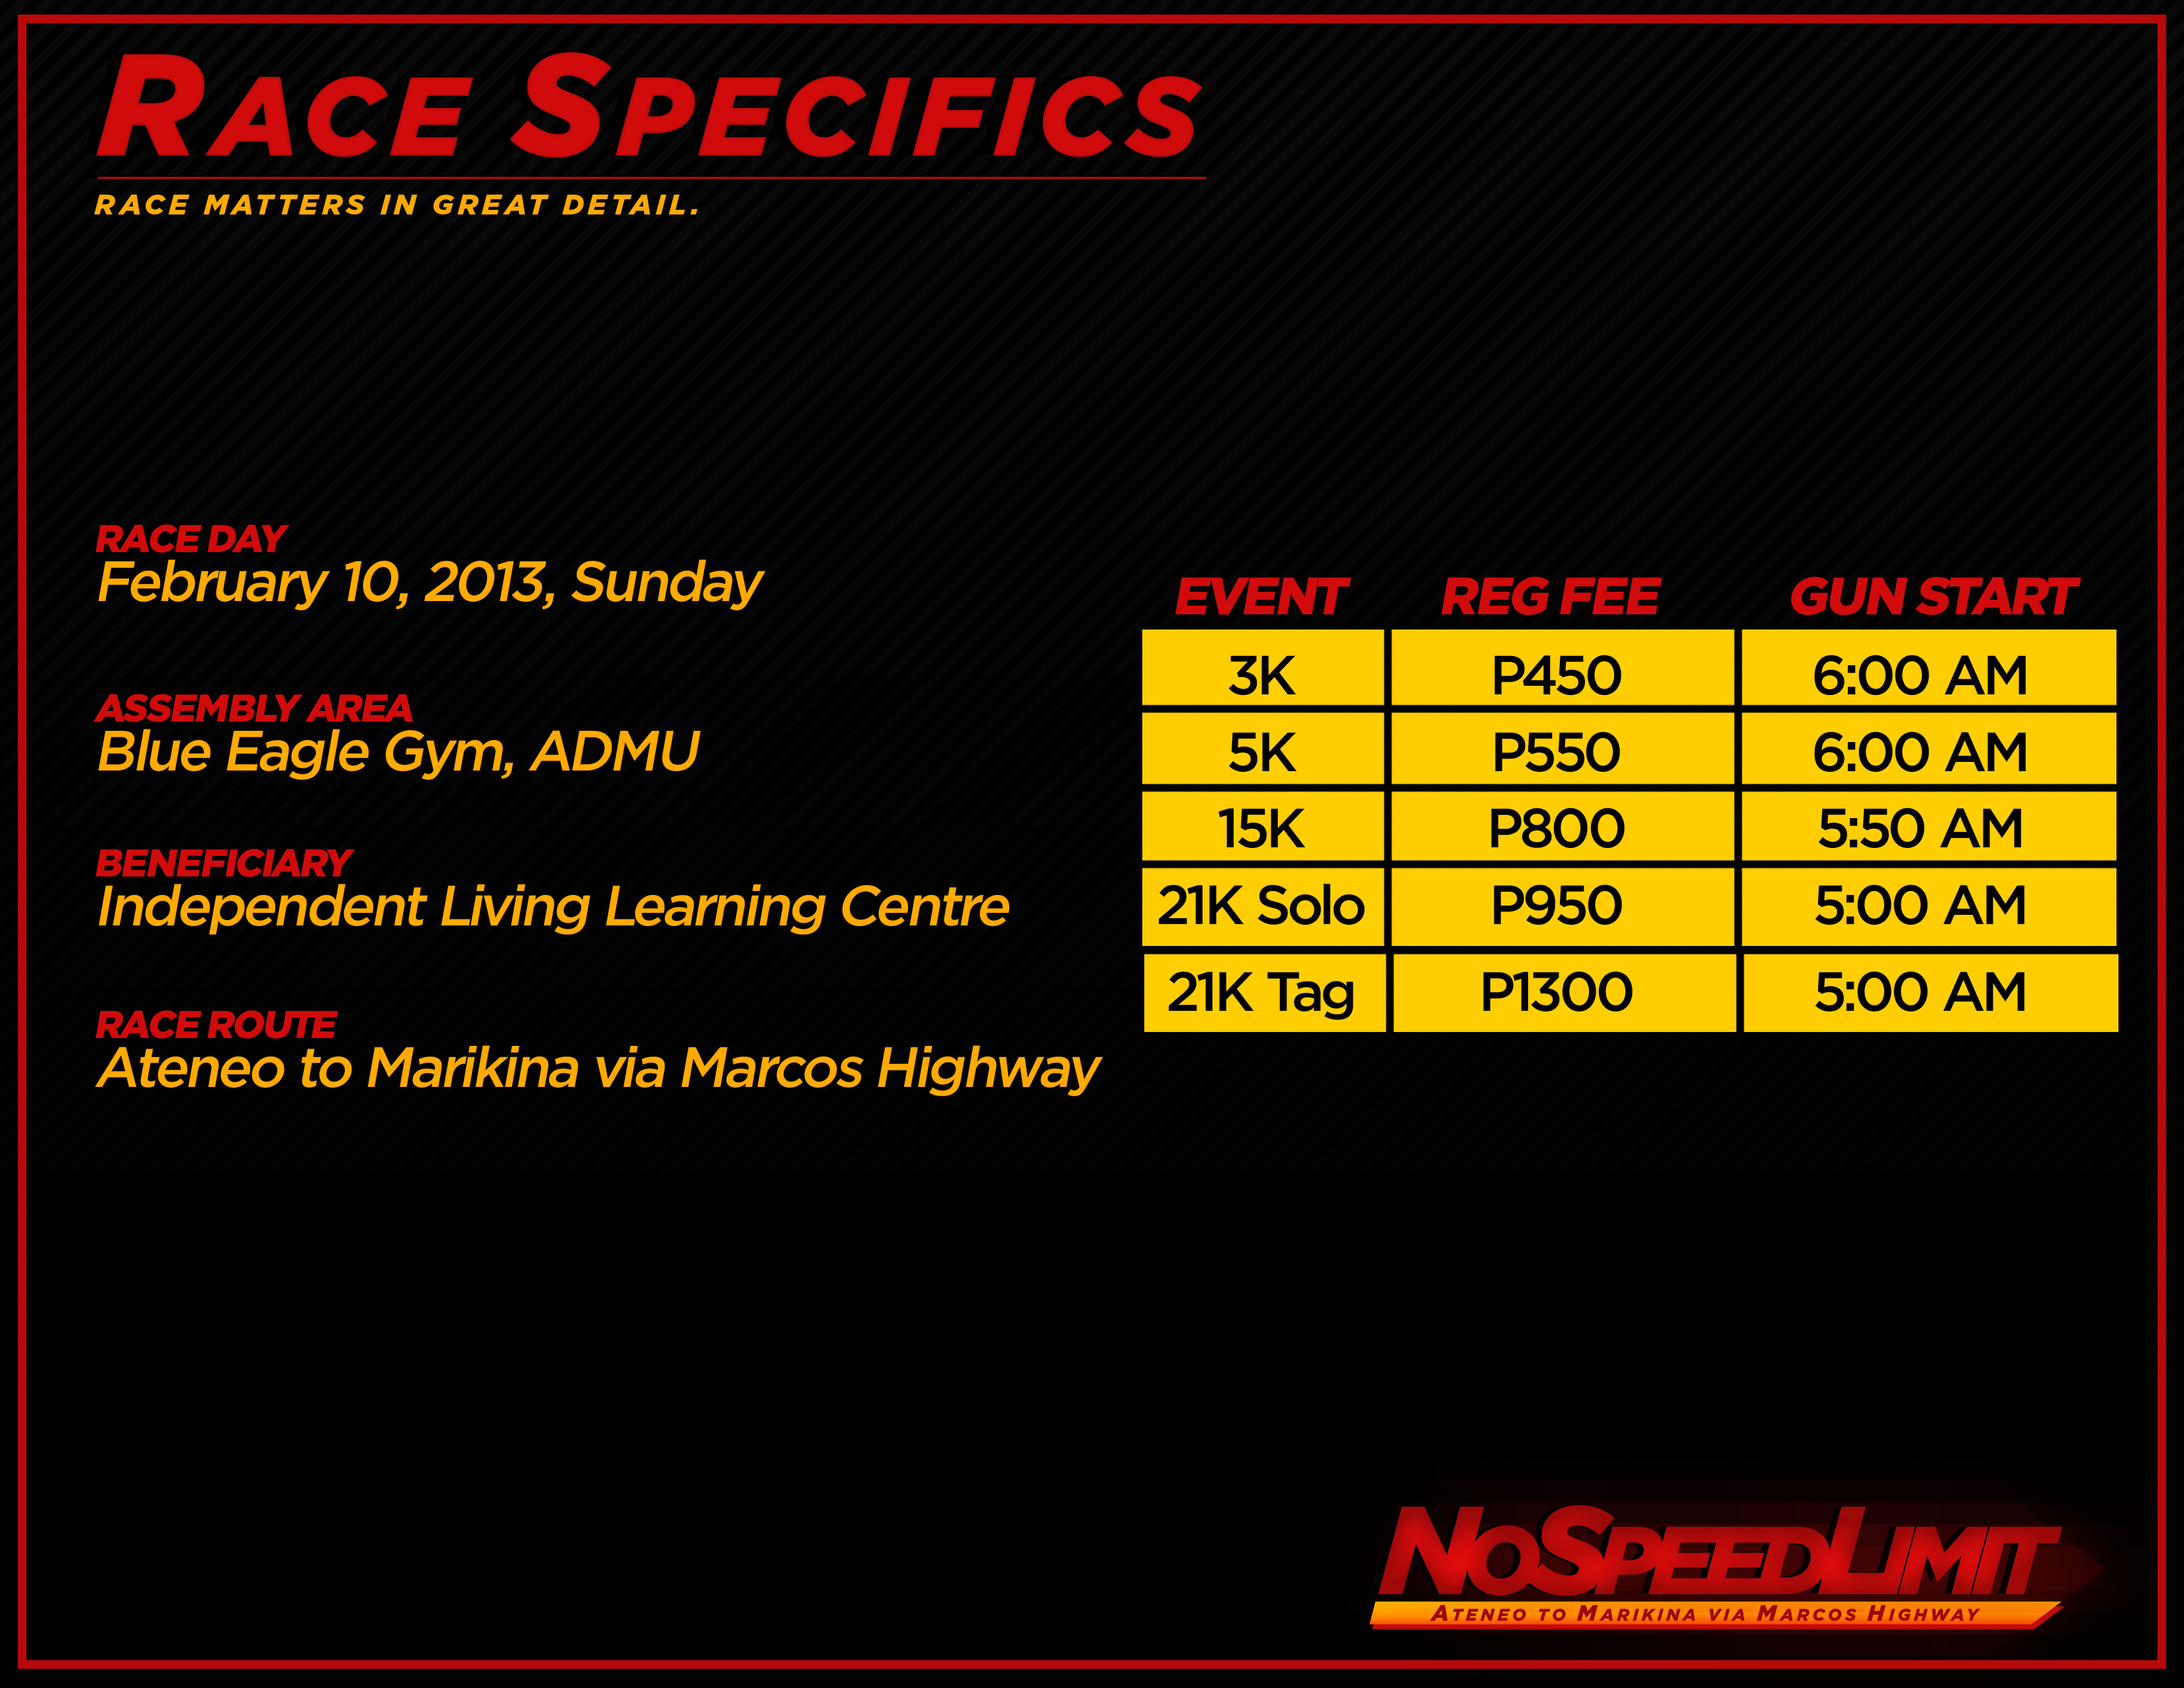 no-speed-limit-run-2013-race-specifics